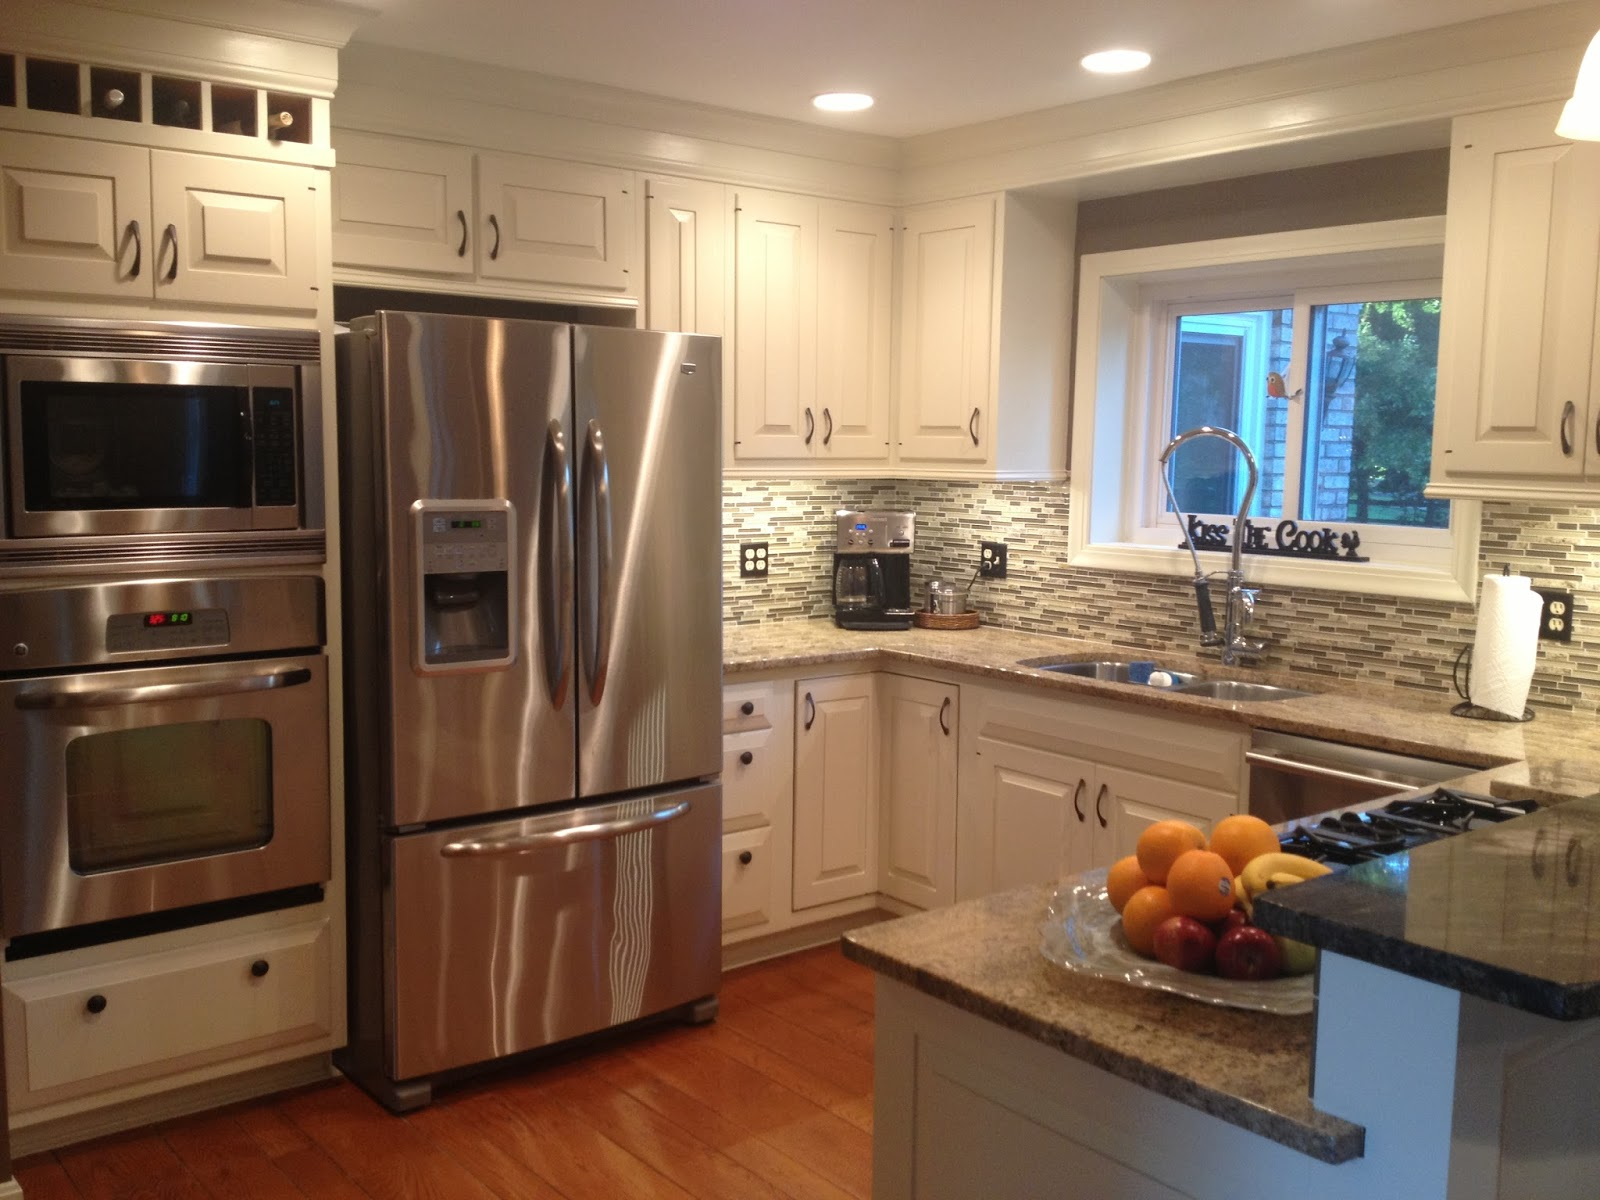 Four seasons style the new kitchen remodel on a budget for Renovate a kitchen on a budget